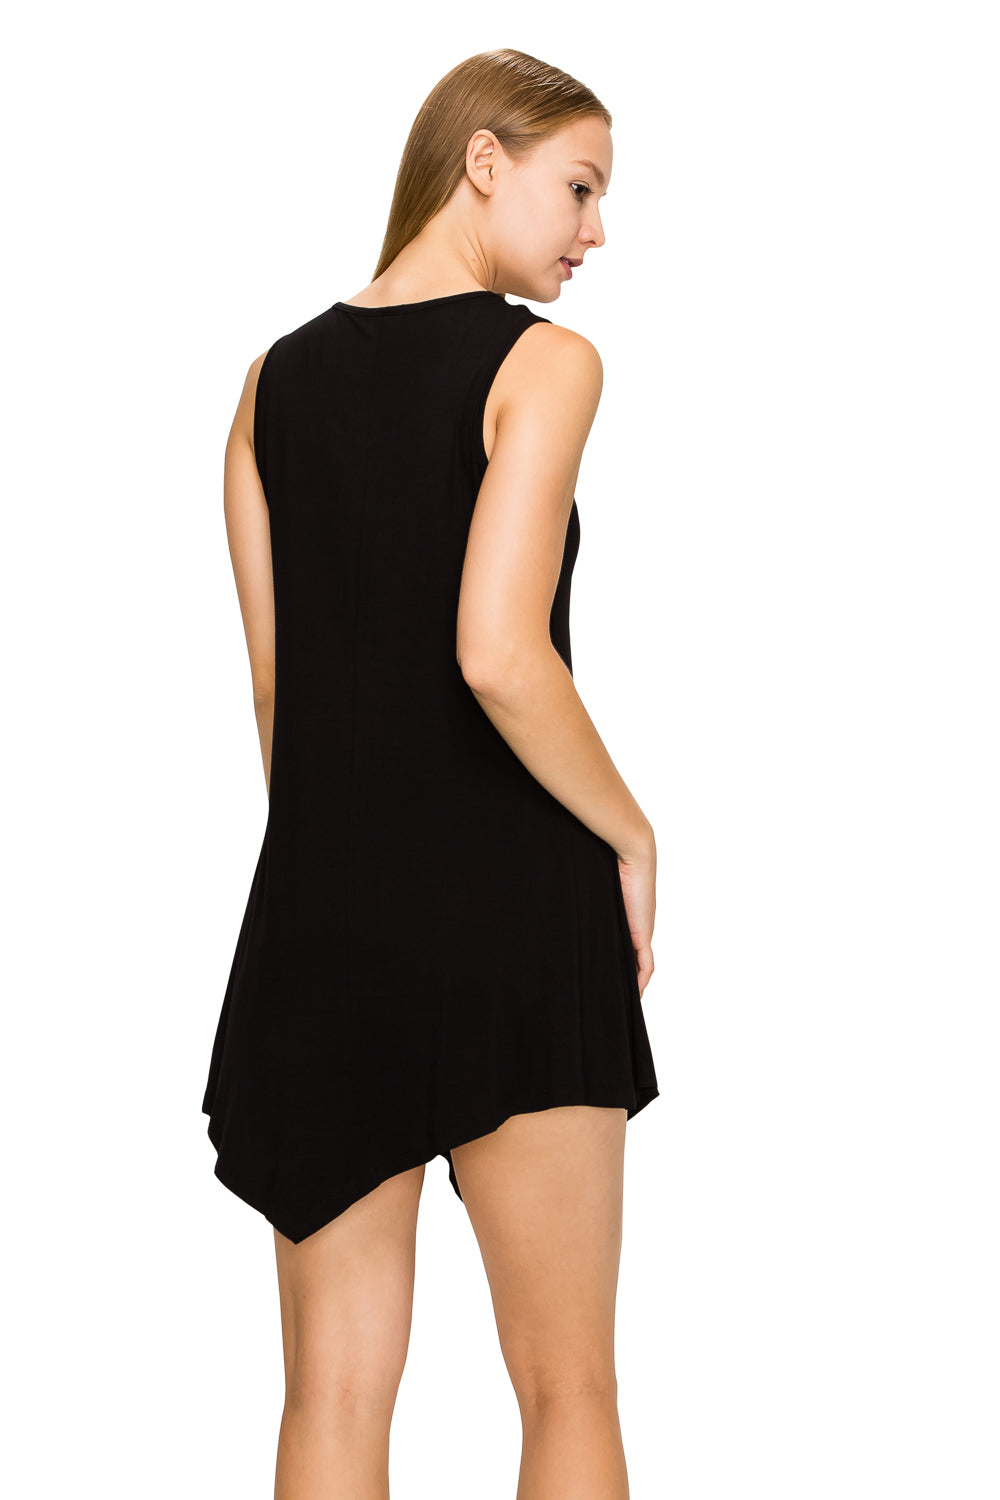 Black Sleeveless Tank Tunic - Poplooks